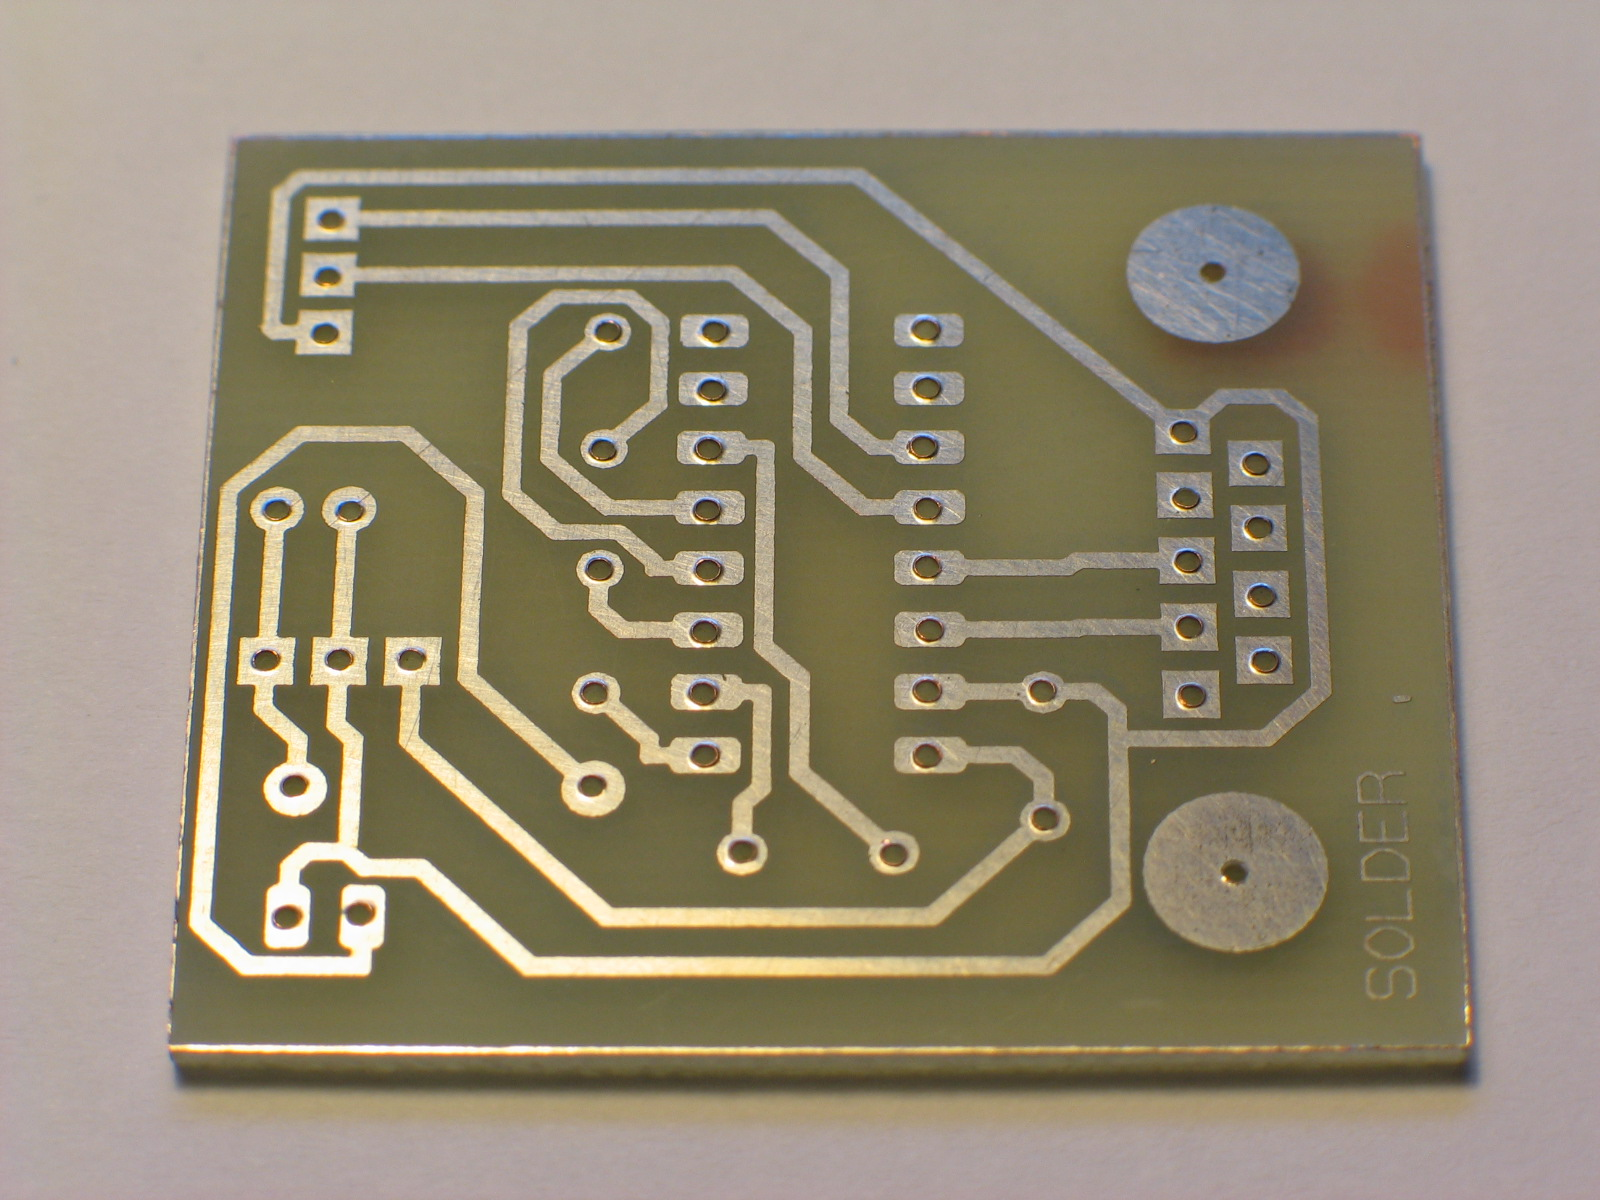 Amiga projects: Home made printed circuit board (PCB) for prototypes